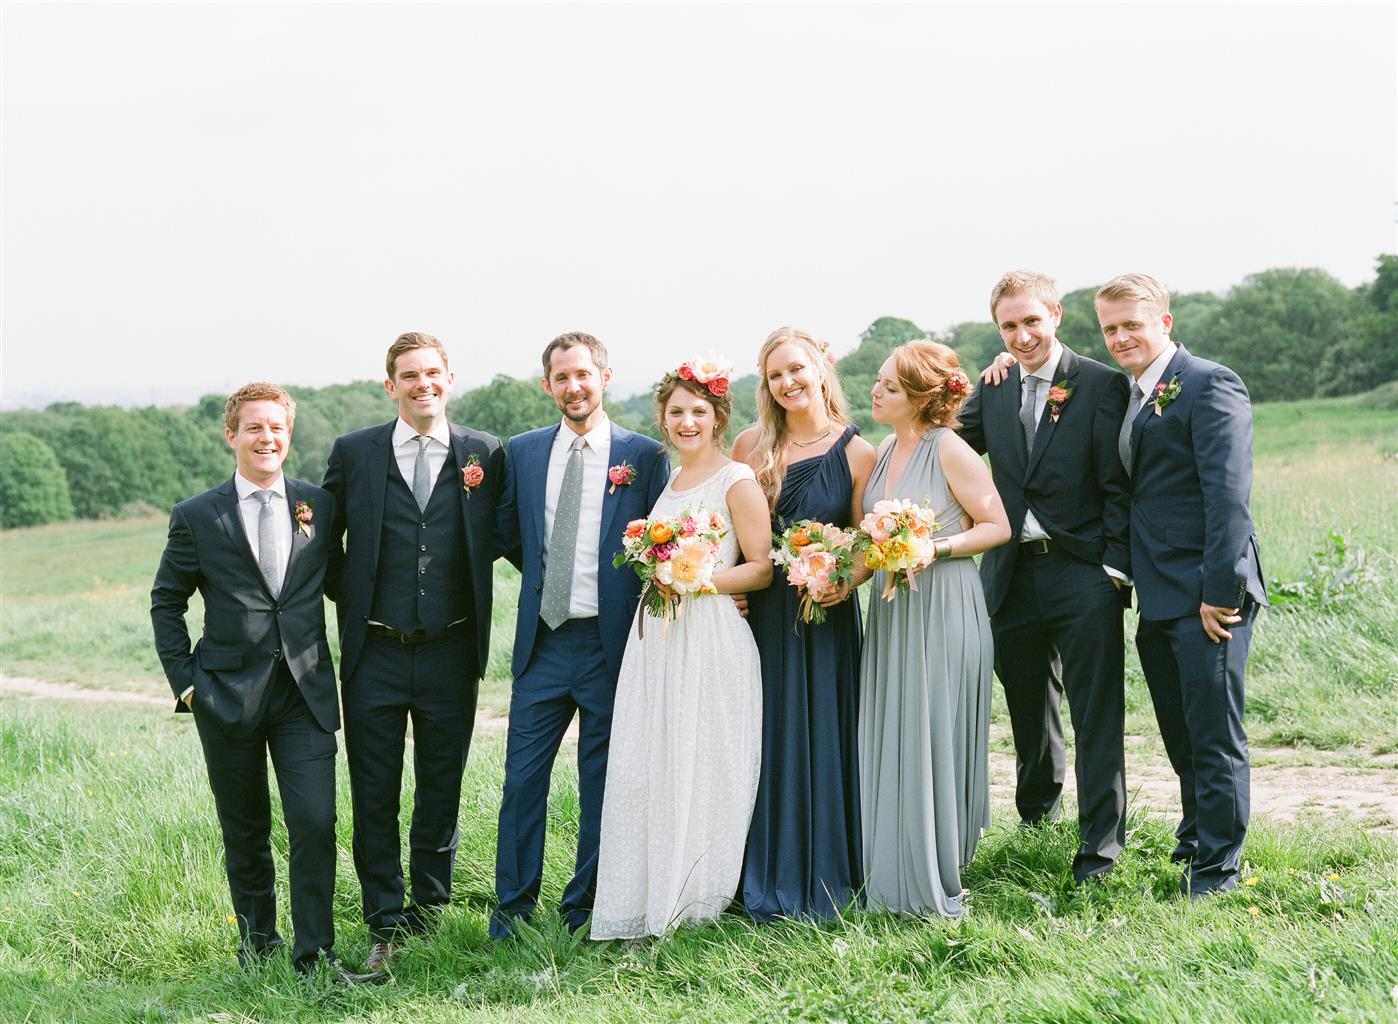 Wedding party - A 1940s Wedding Dress for a Sweet Early Summer Wedding from Taylor & Porter Photography